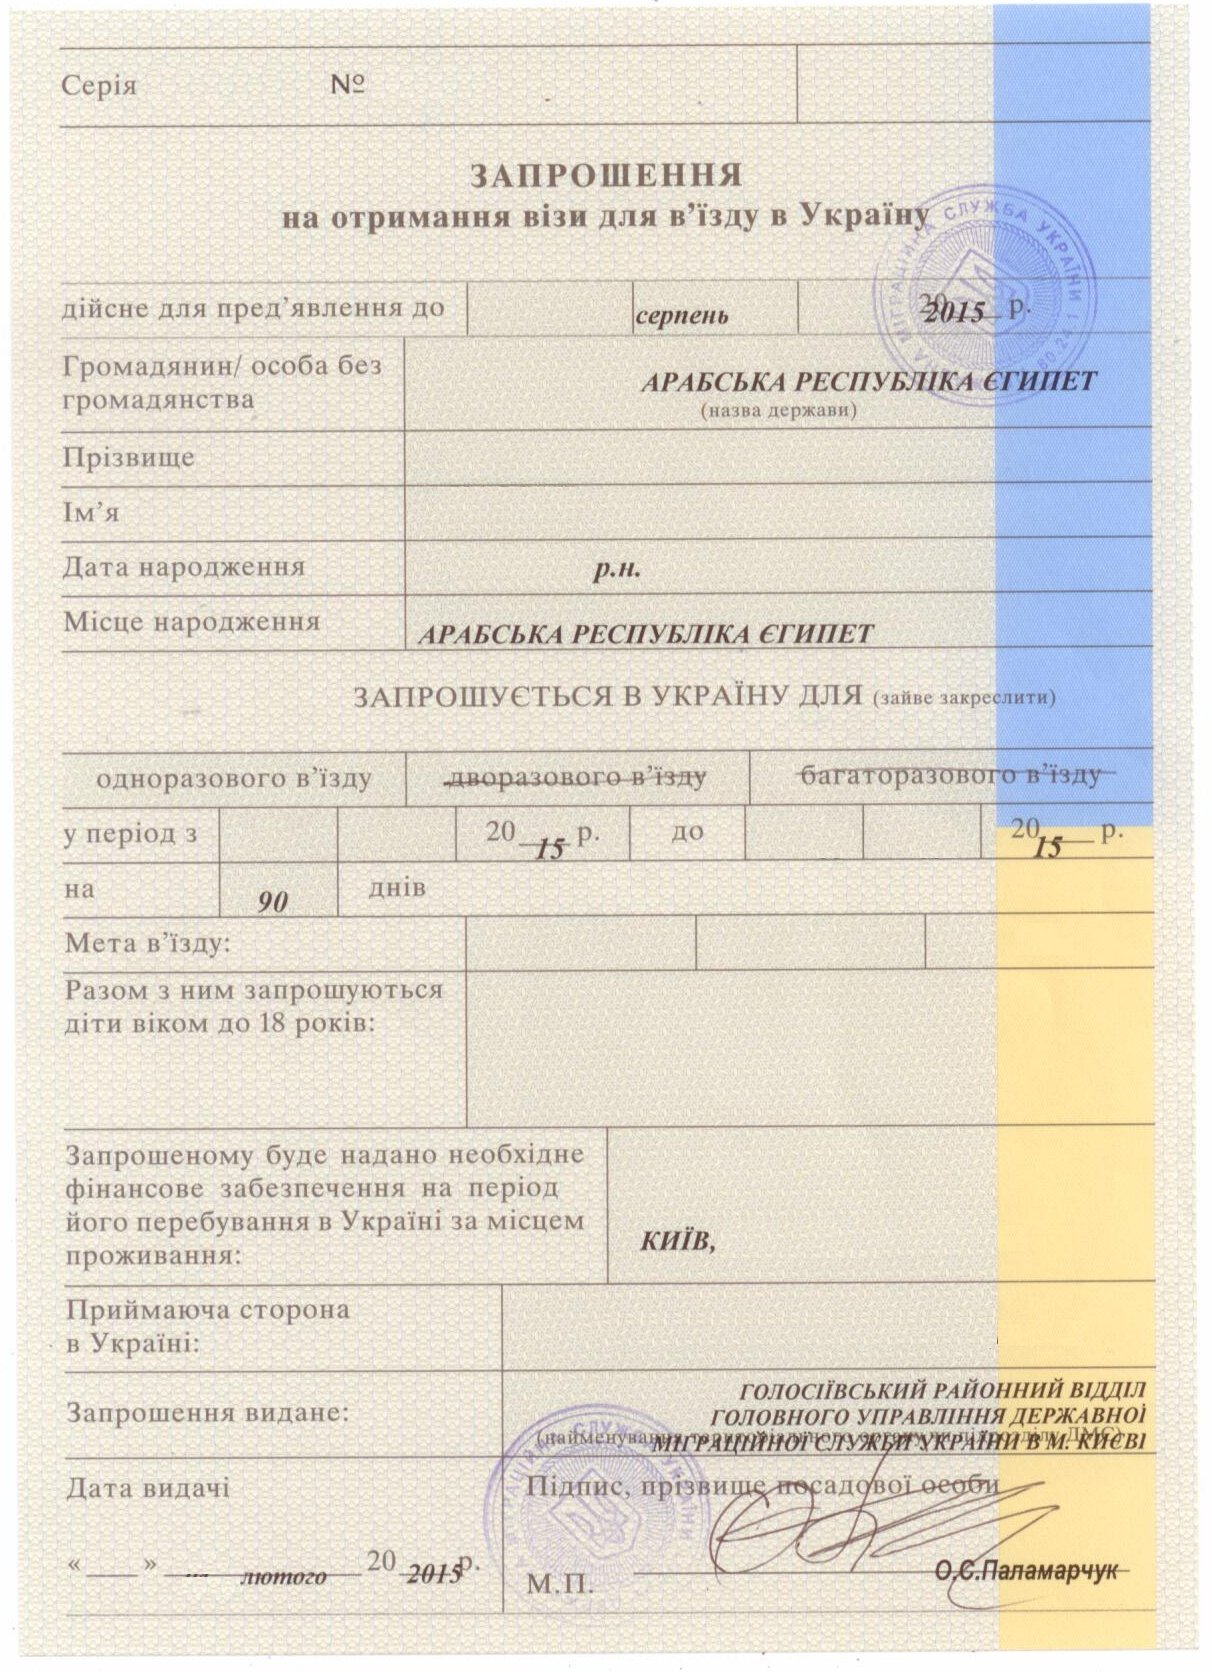 Obtainment of official invitation to Ukraine by foreign citizens